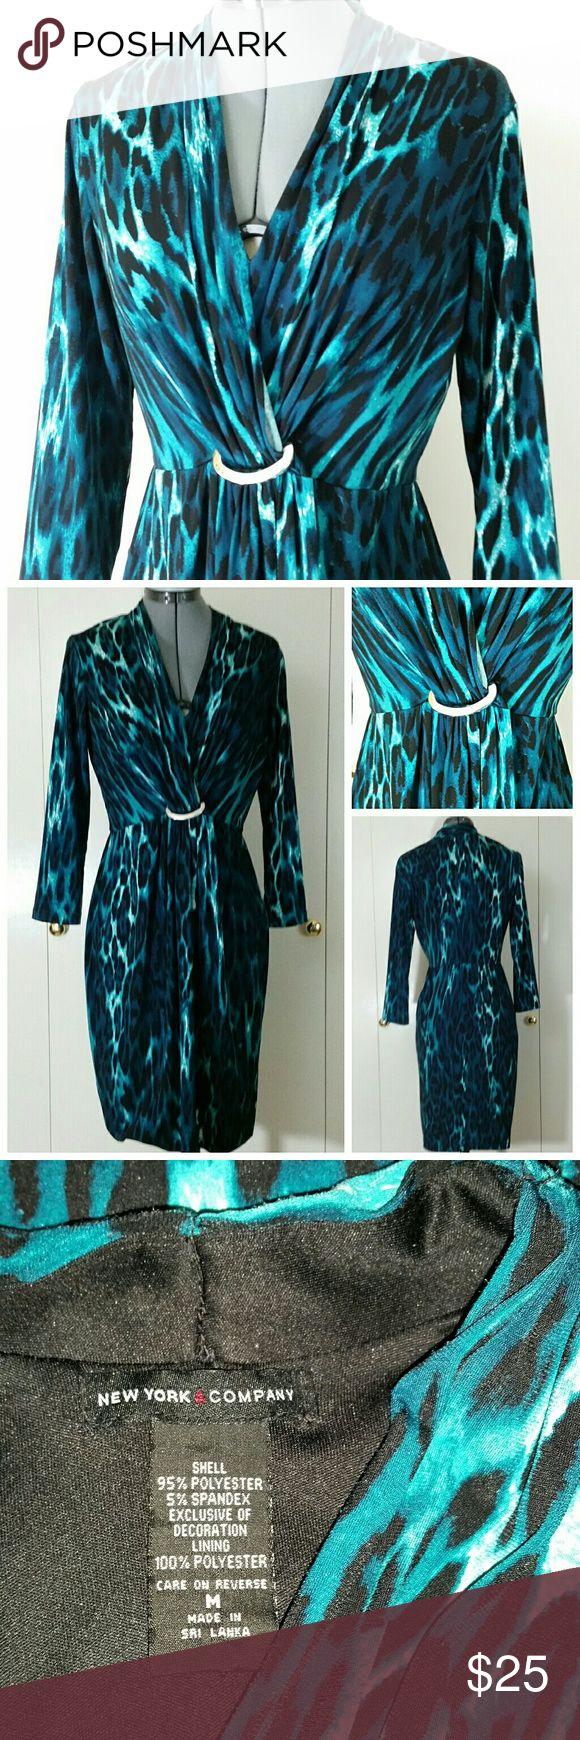 """NEW YORK &COMPANY Fake Wrap Dress NEW YORK & COMPANY Womens Sz. M Animal Print Dress  Gently used, minor flaw see last picture, overall still in good condition.  Measurements laying flat: Armpit to armpit: 17"""" Waist: 14"""" Length: 36.5"""" Sleeve: 19""""  Thanks,  Item#DD1 New York & Company Dresses"""